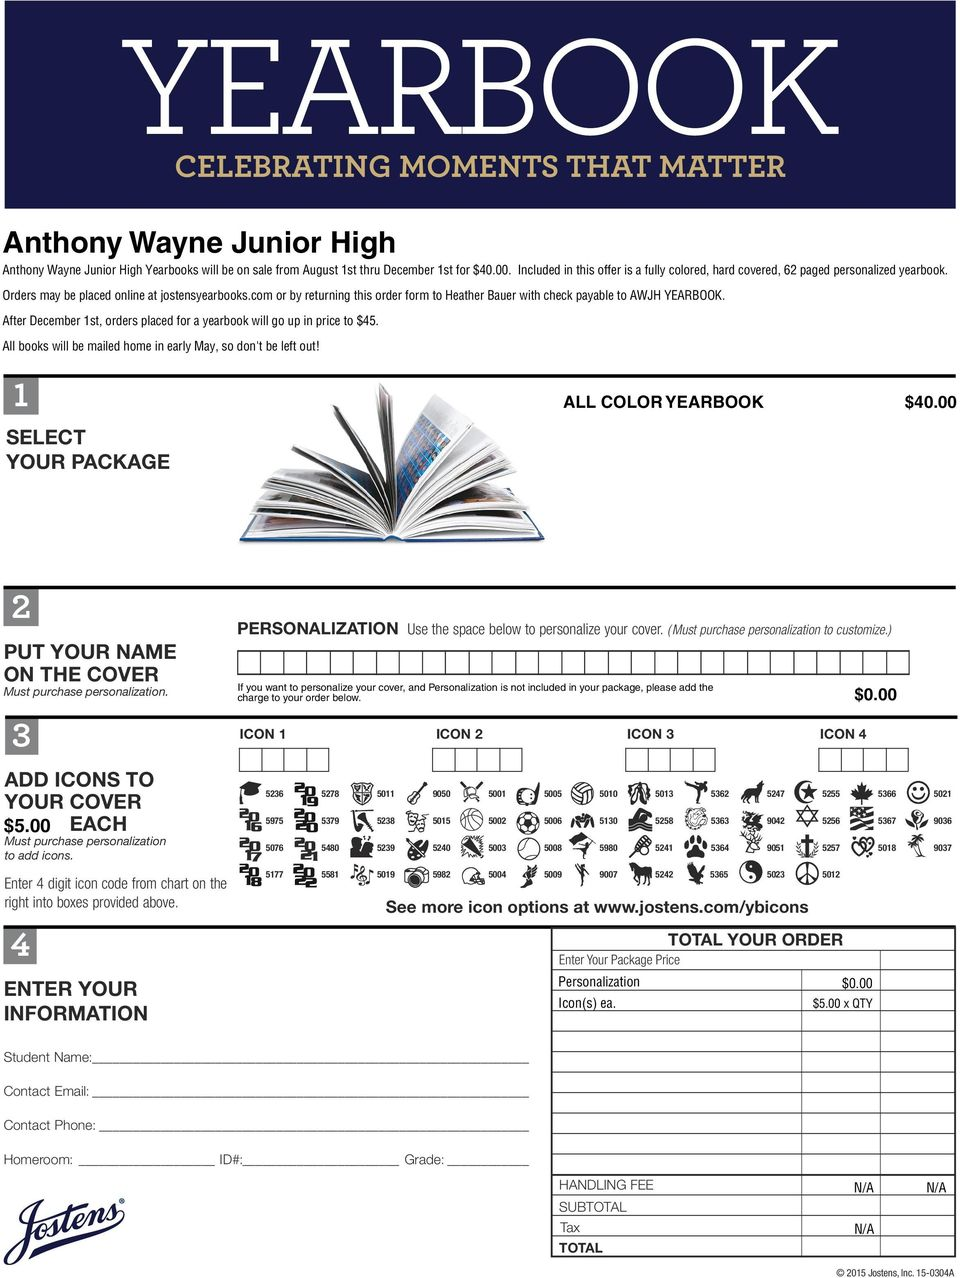 com or by returning this order form to Heather Bauer with check payable to AWJH YEARBOOK. After December 1st, orders placed for a yearbook will go up in price to $45.